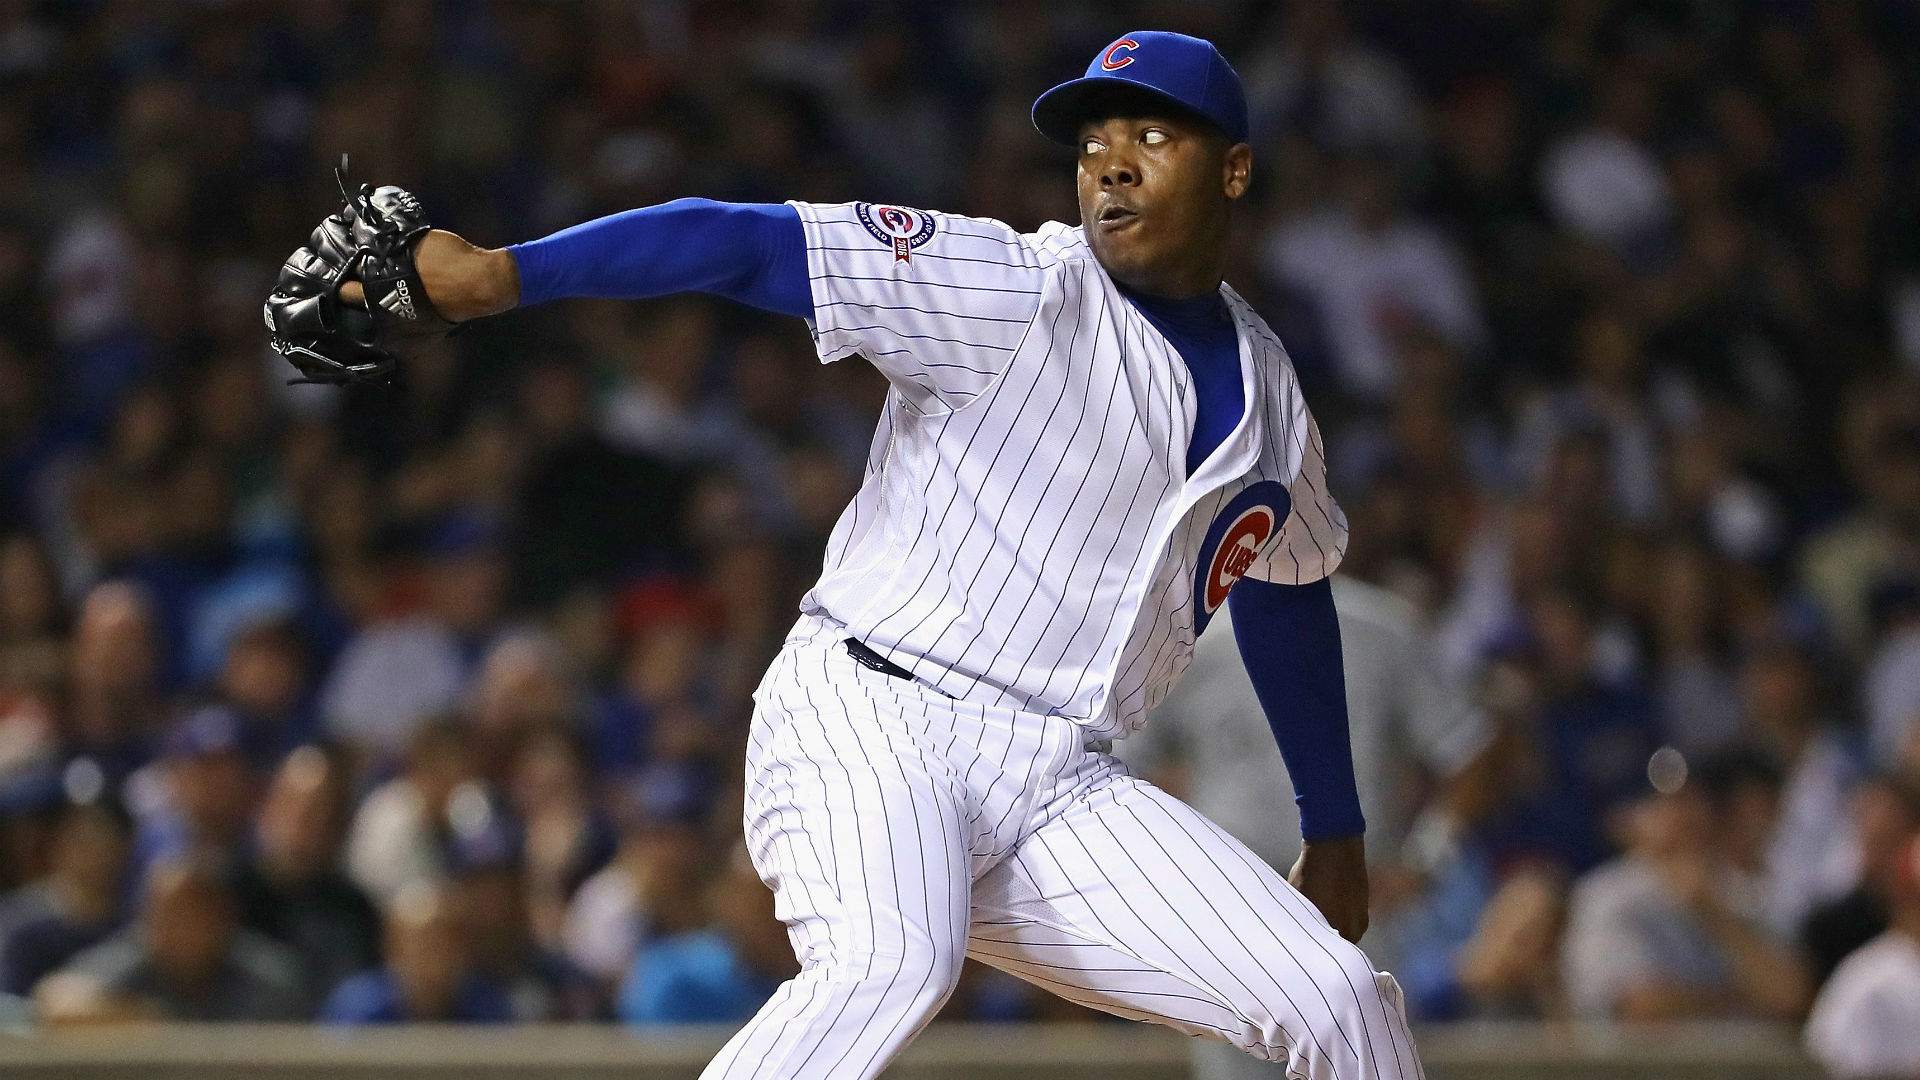 Cubs apologize for 'irresponsible' song choice as pitcher exits the mound